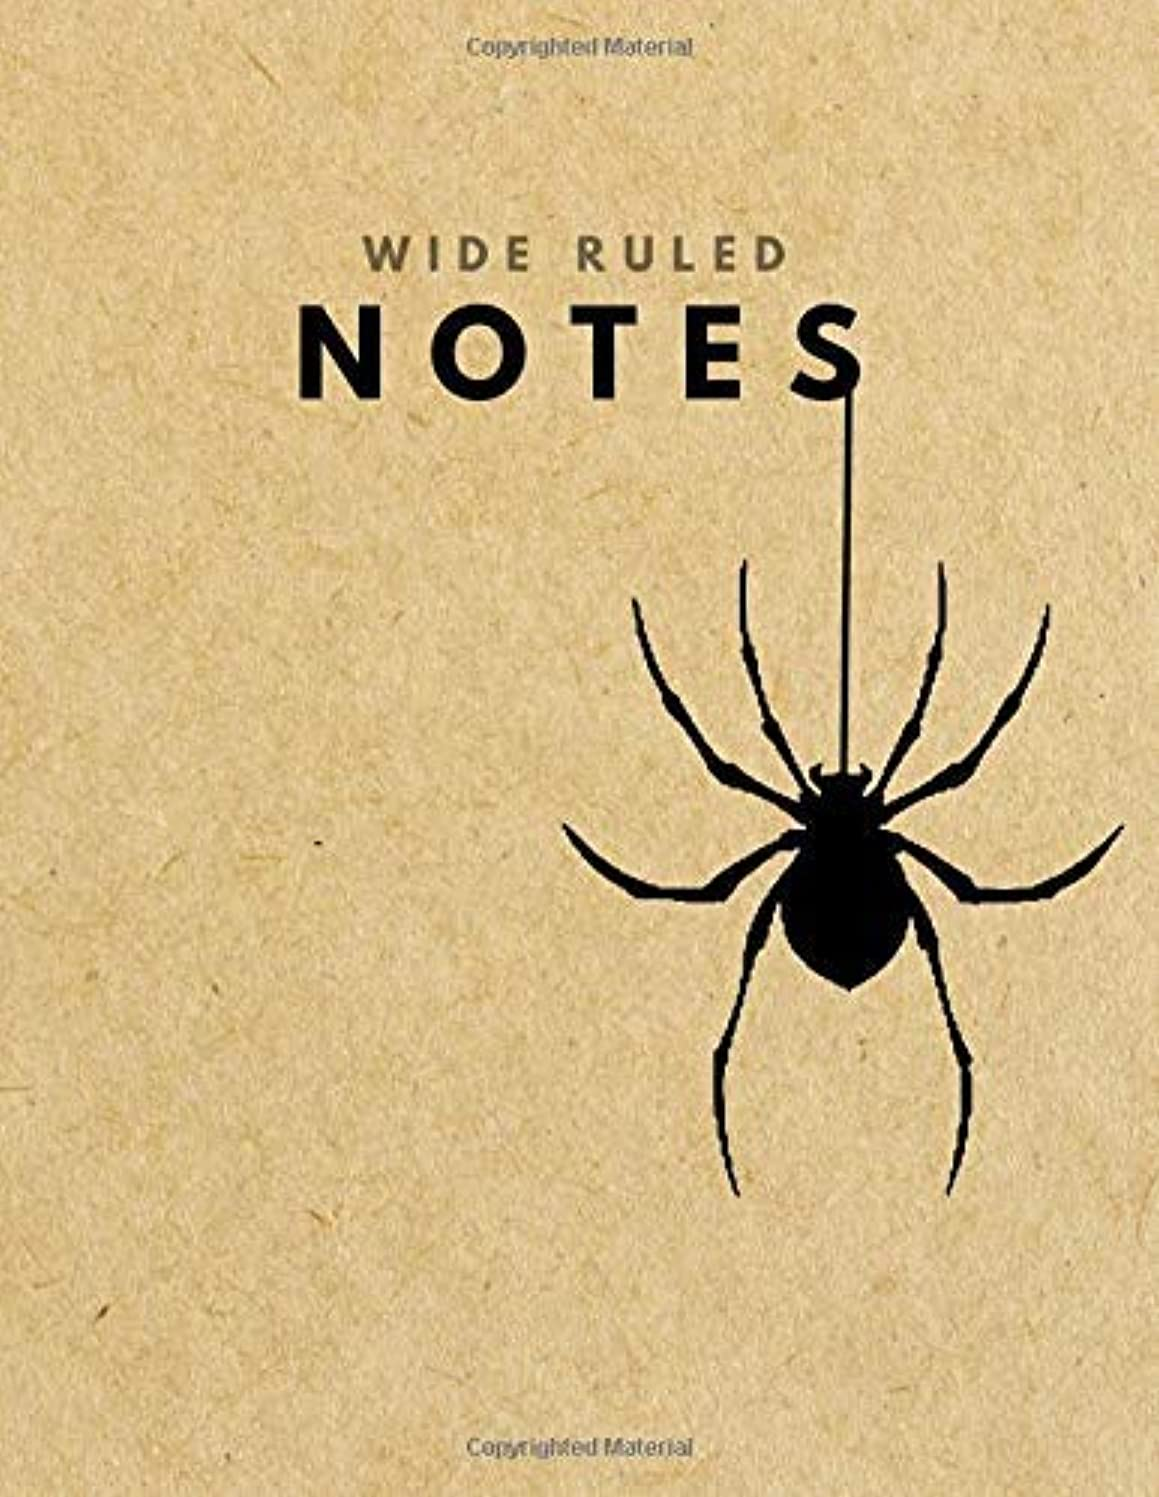 Wide Ruled Notes: Spider Brown Paper Soft Cover | Large (8.5 x 11 inches) Letter Size | 120 pages | Lined Retro Notebook (no margins) [並行輸入品]